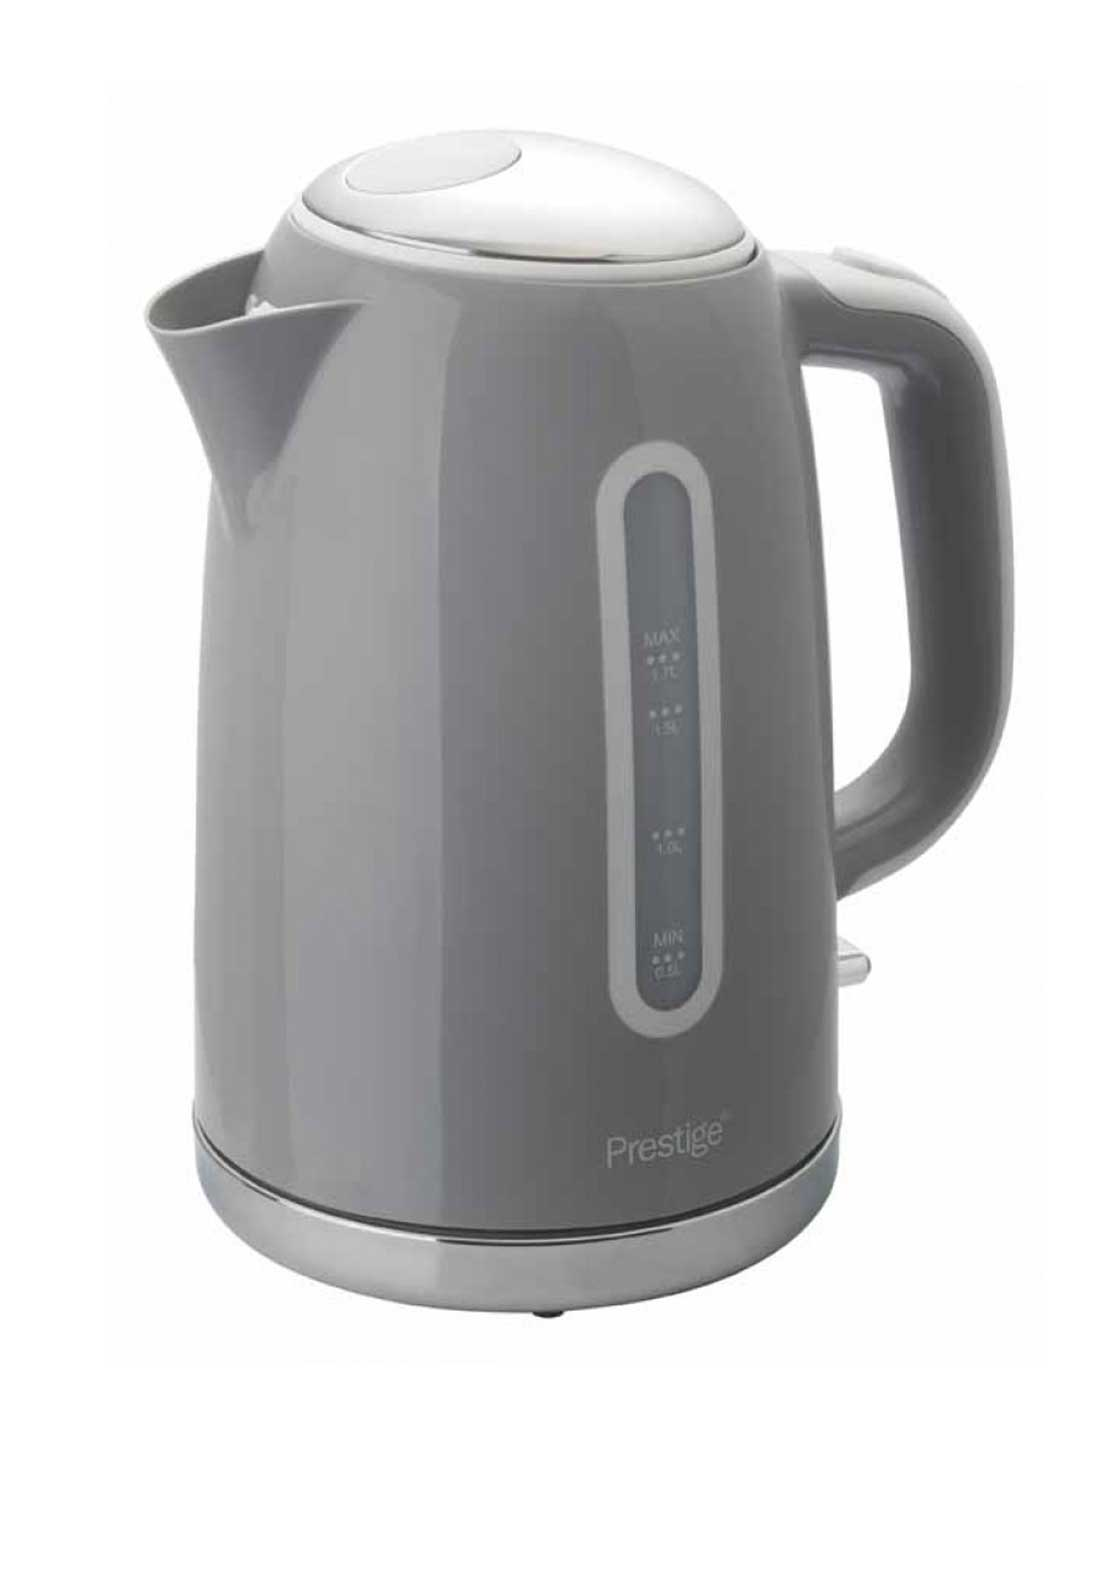 Prestige 1.7L Pebble Electric Jug Kettle, Grey